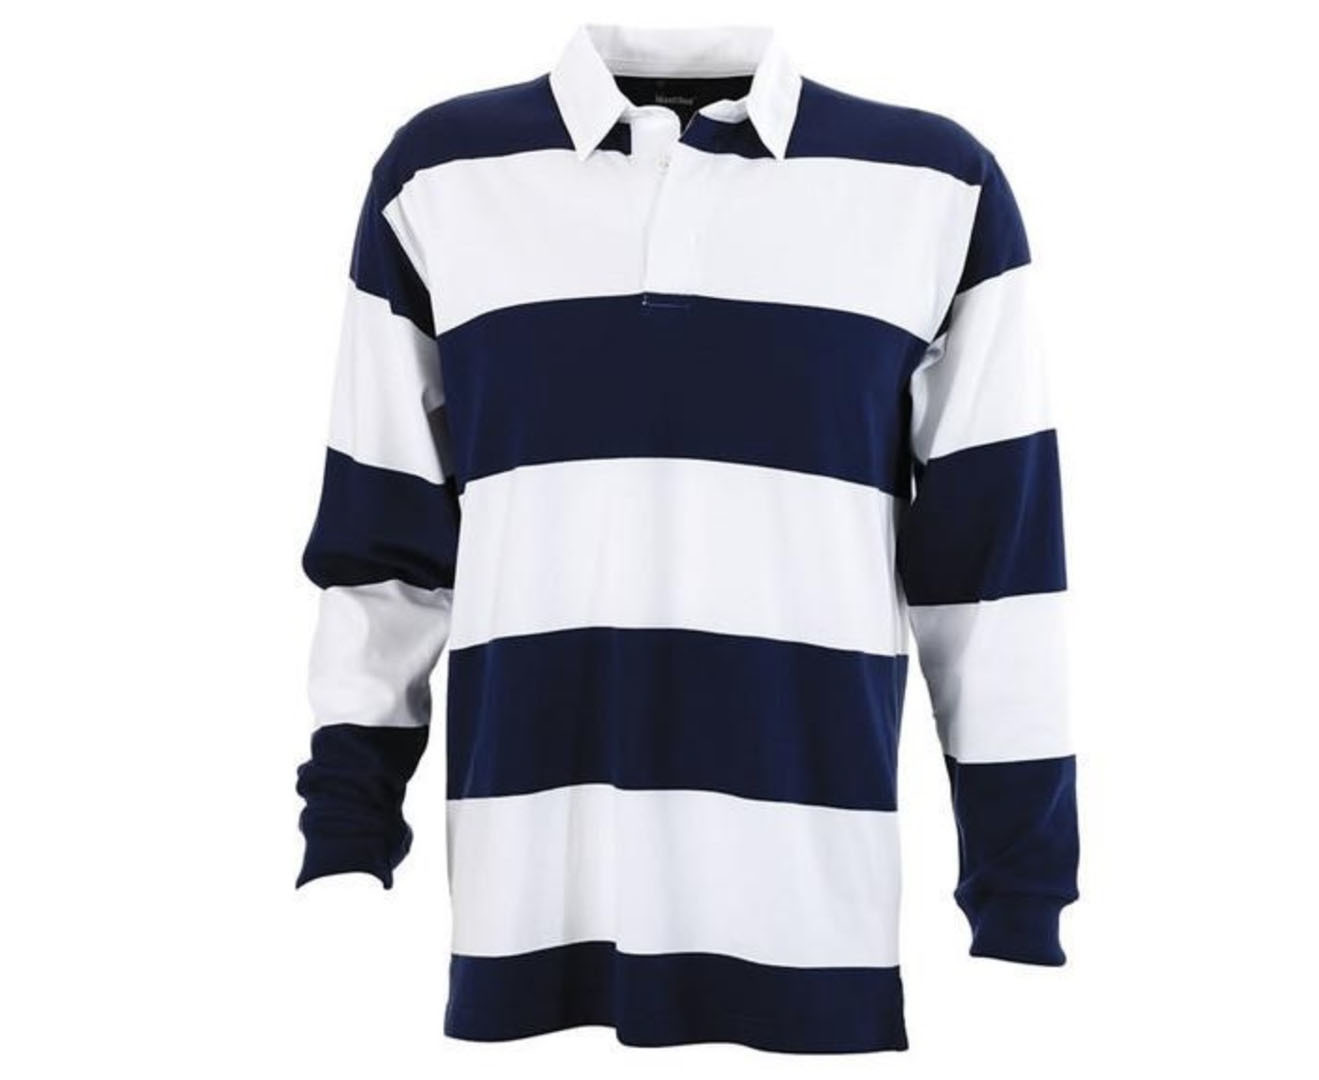 Identitee-Men-039-s-Striped-RUGBY-TOP-100-Cotton-Long-Sleeve-Jumper-Polo-Shirt thumbnail 15